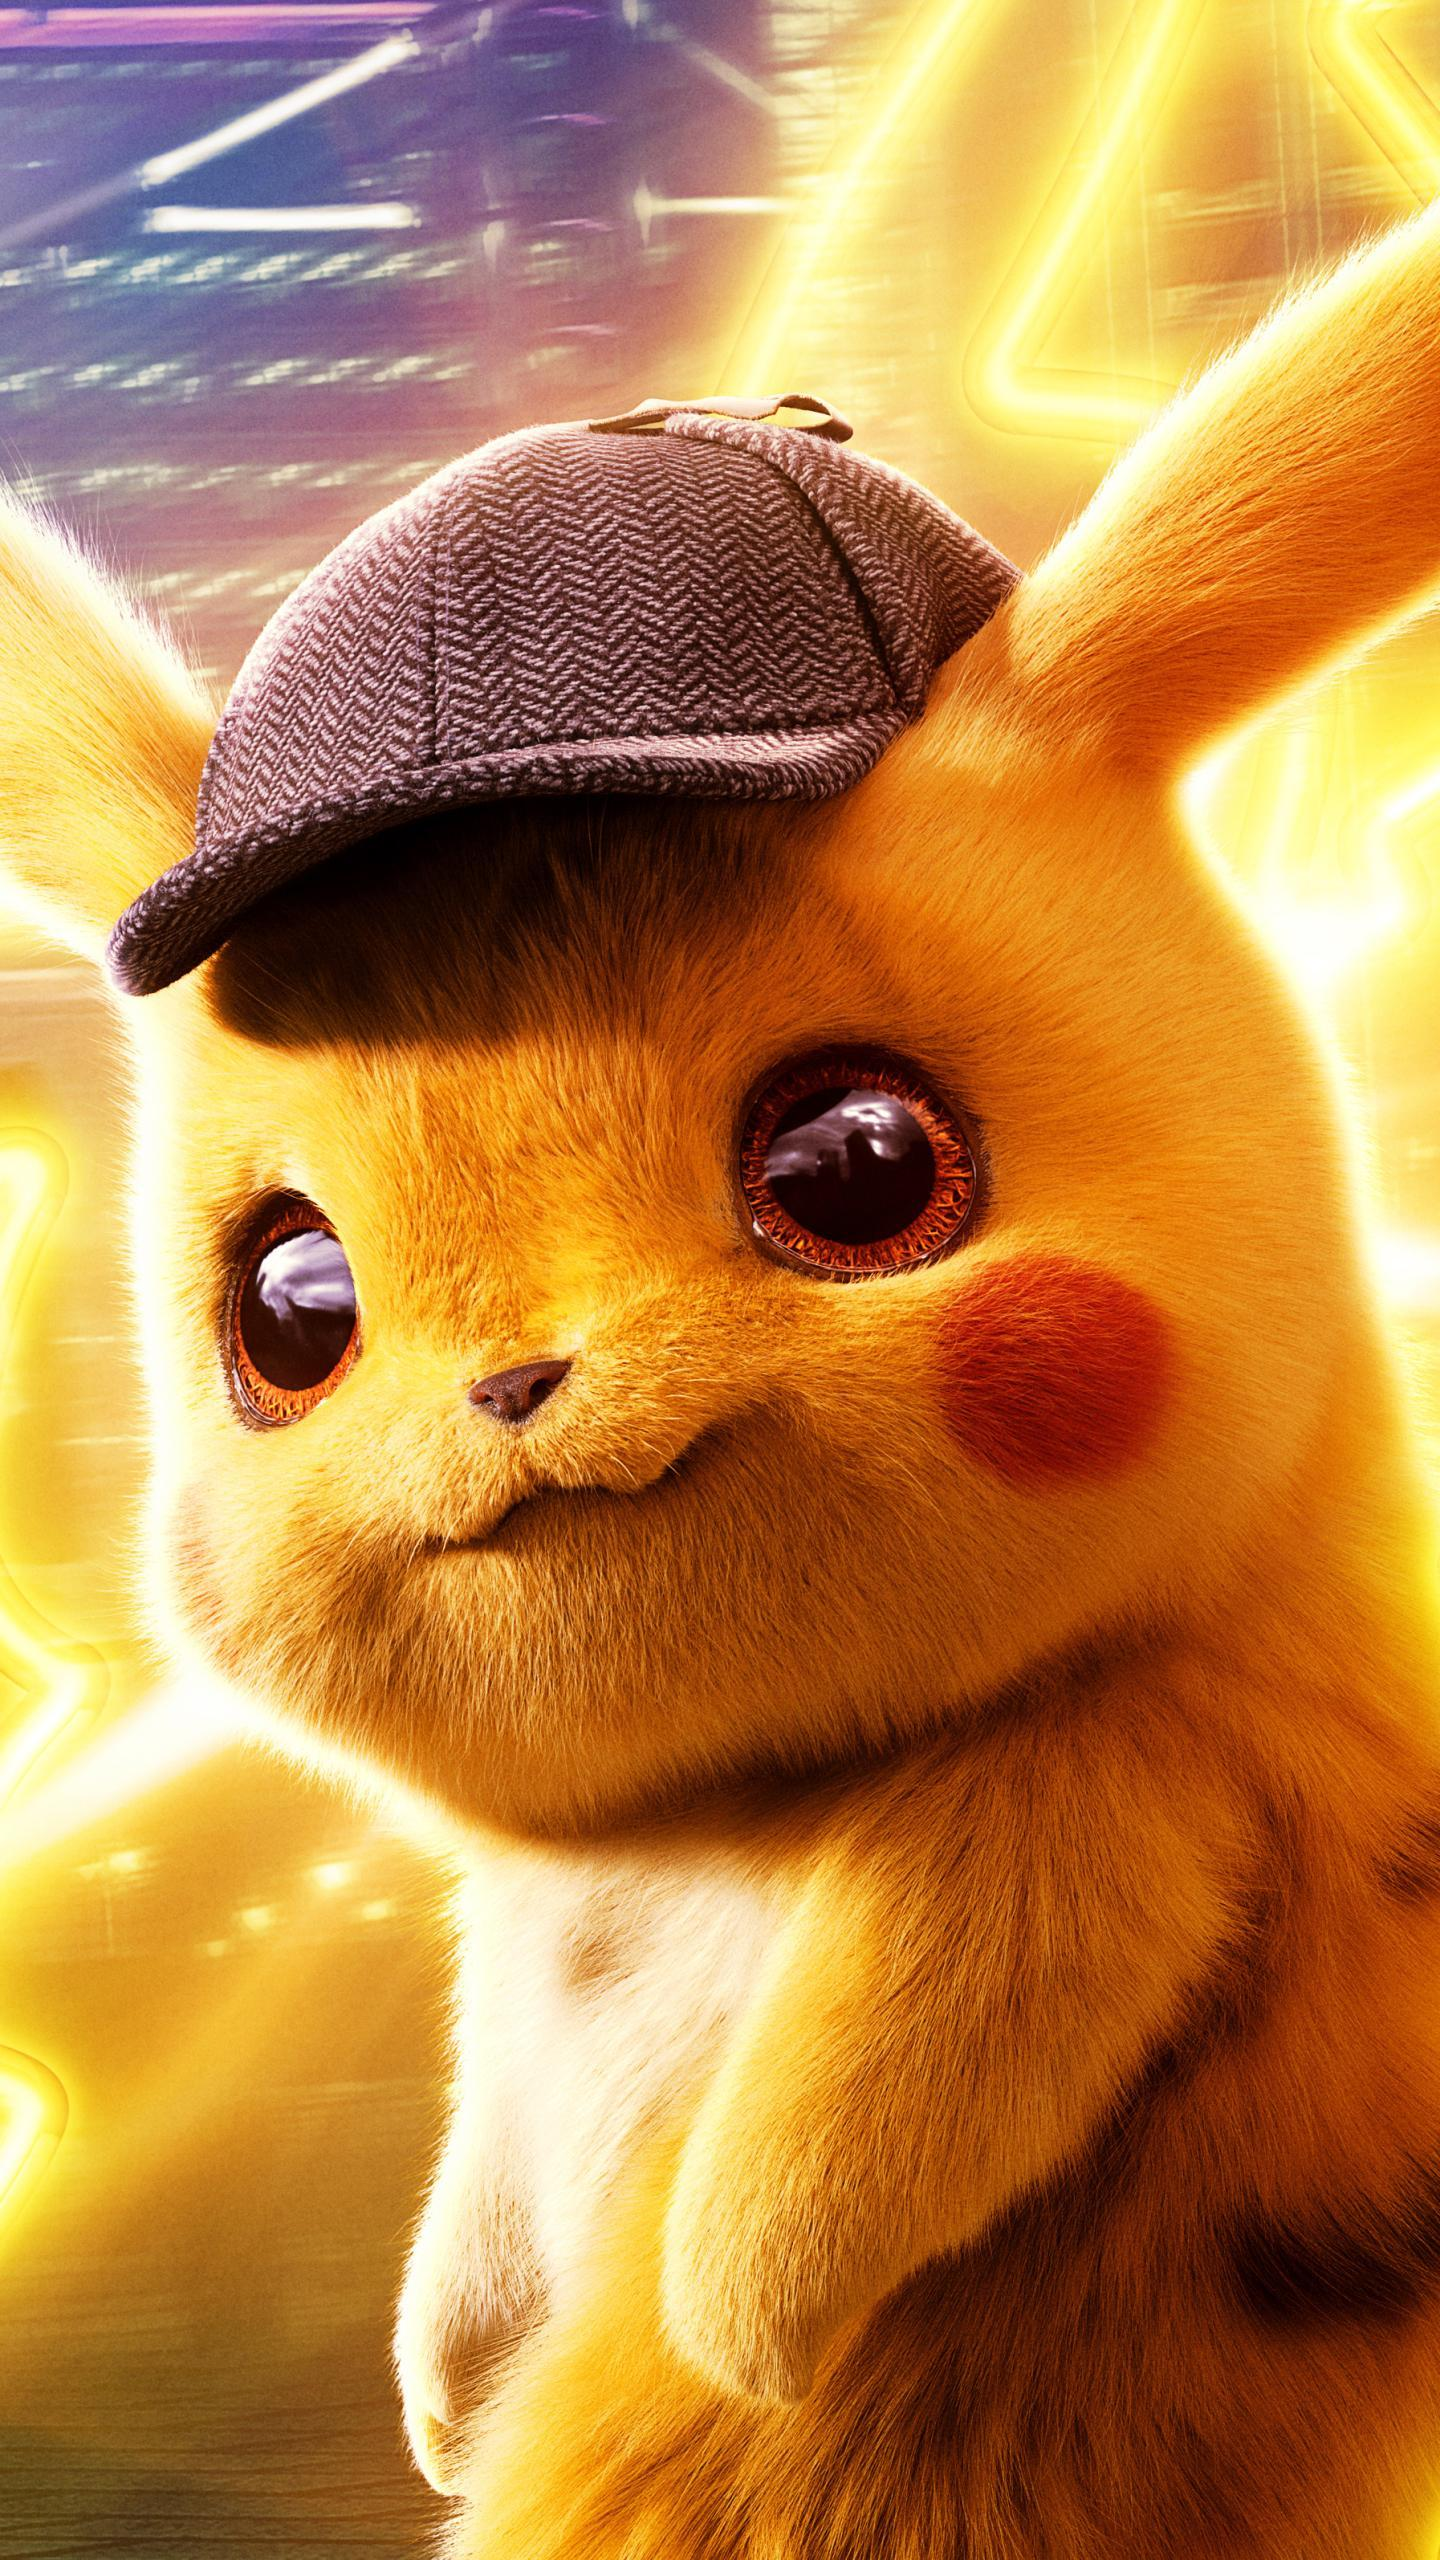 Pikachu Movie Wallpapers Wallpaper Cave